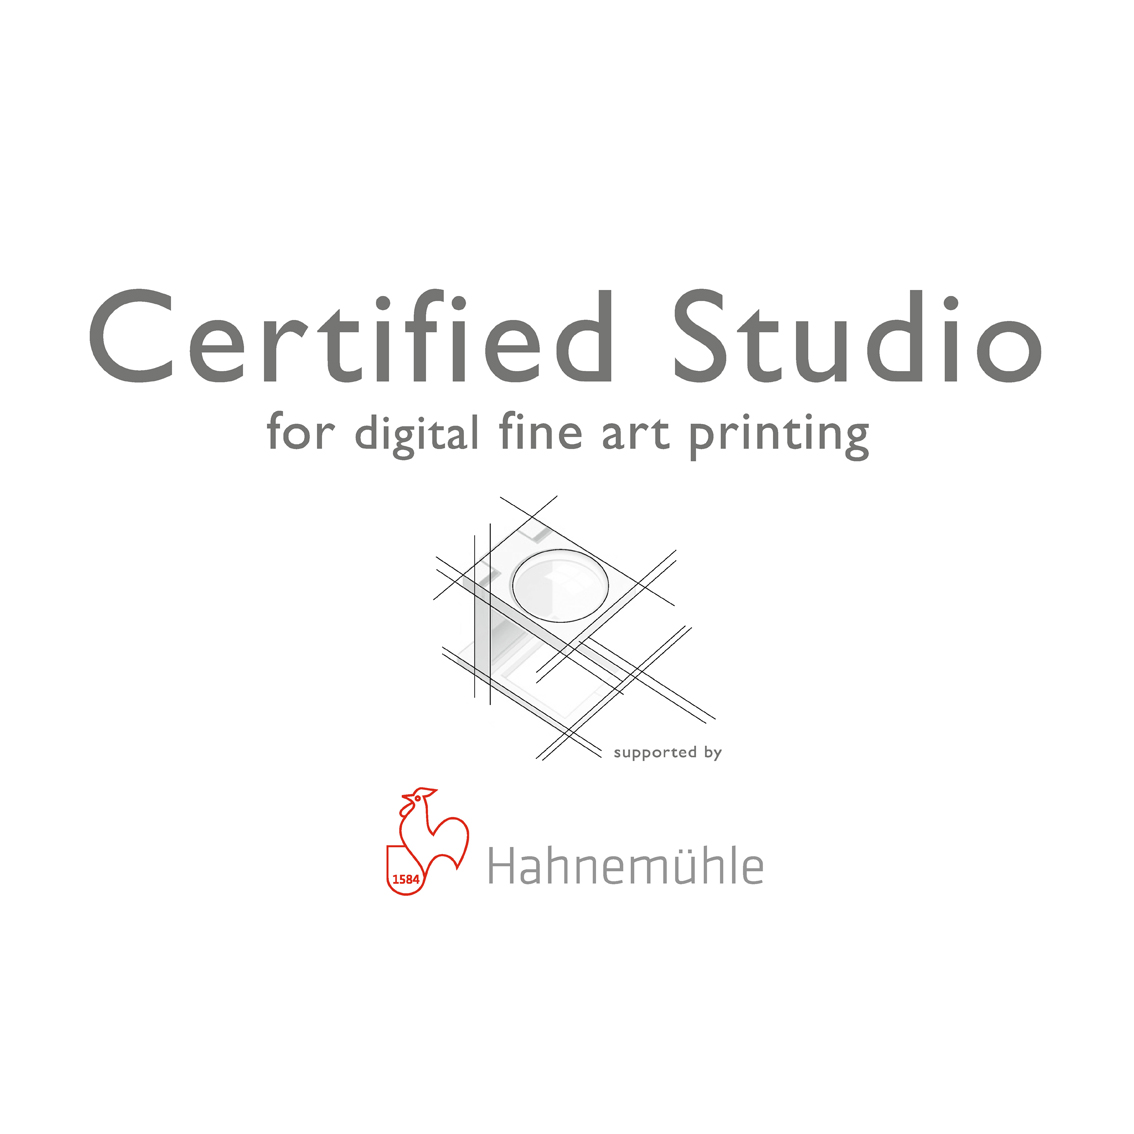 Certified Studio Hahnemühle